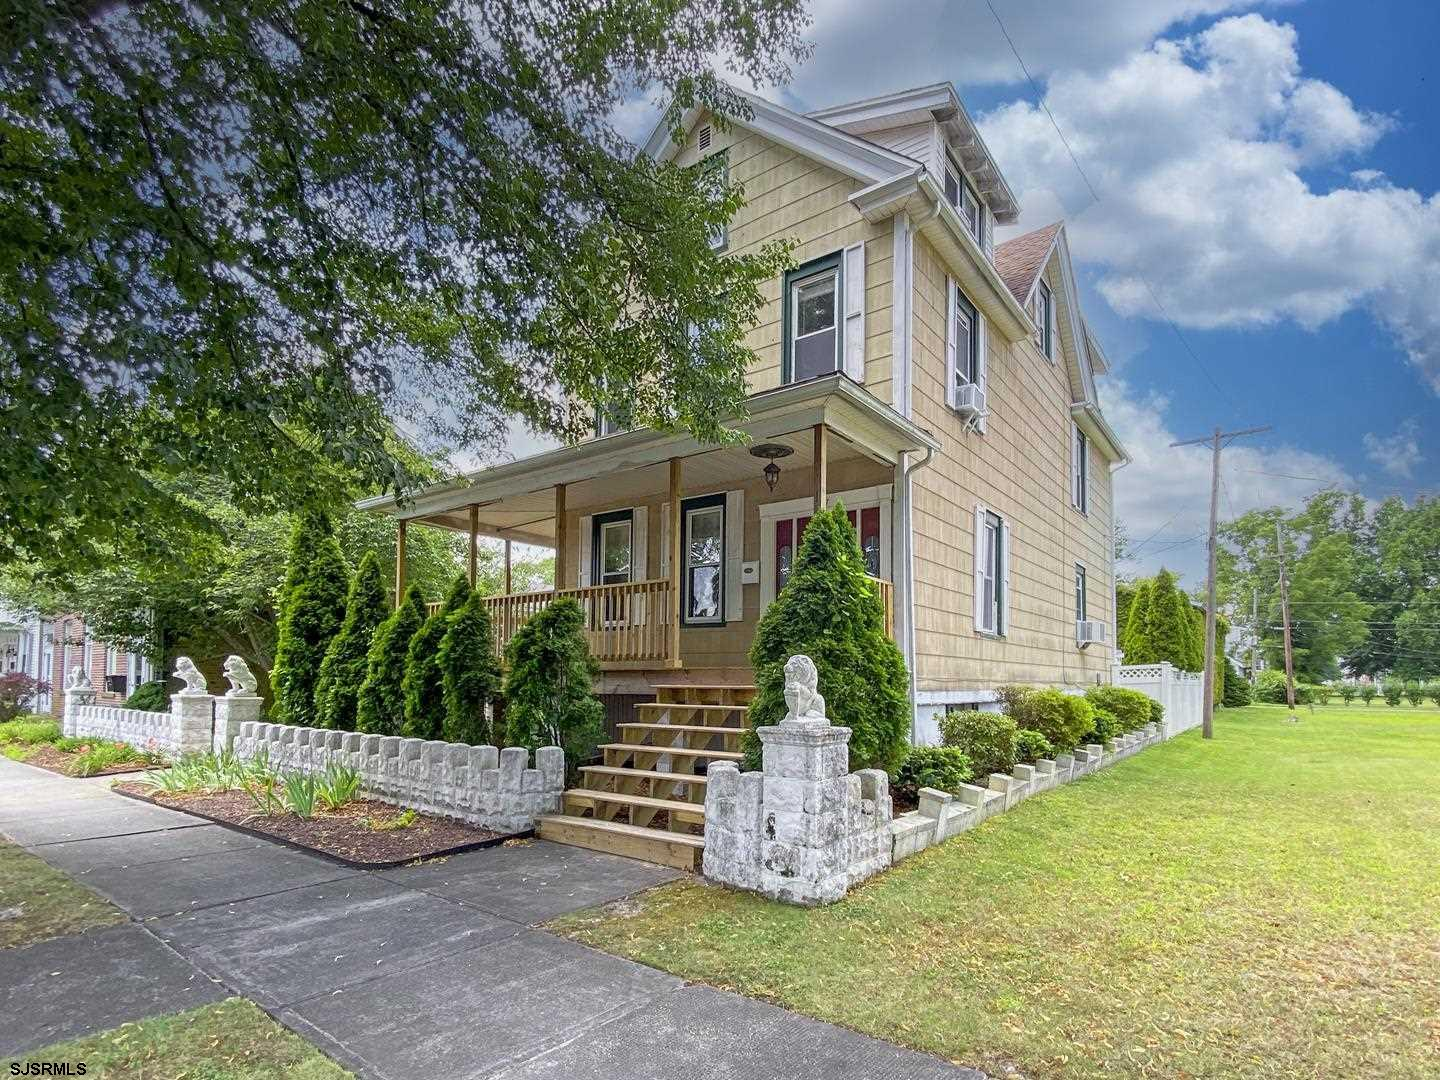 MOVE IN READY!!!  Fully Renovated 6 Bedroom, 2 Bath Home, Featuring  Beautiful Hardwood Floors, Top